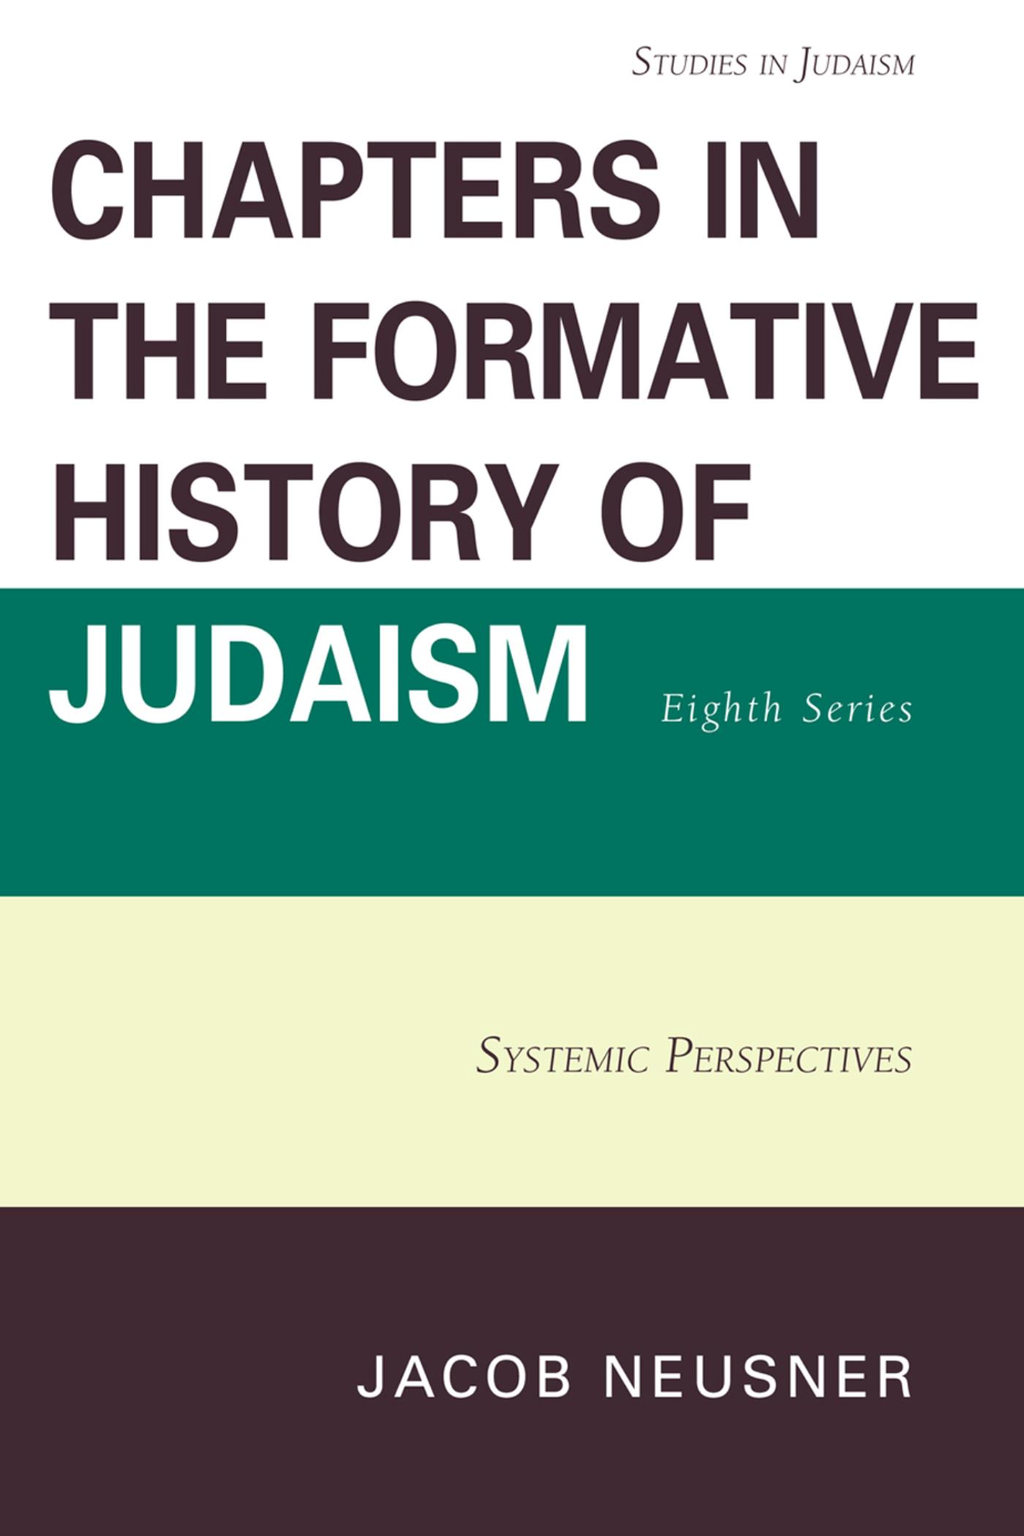 Chapters in the Formative History of Judaism,  Eighth Series Systemic Perspectives